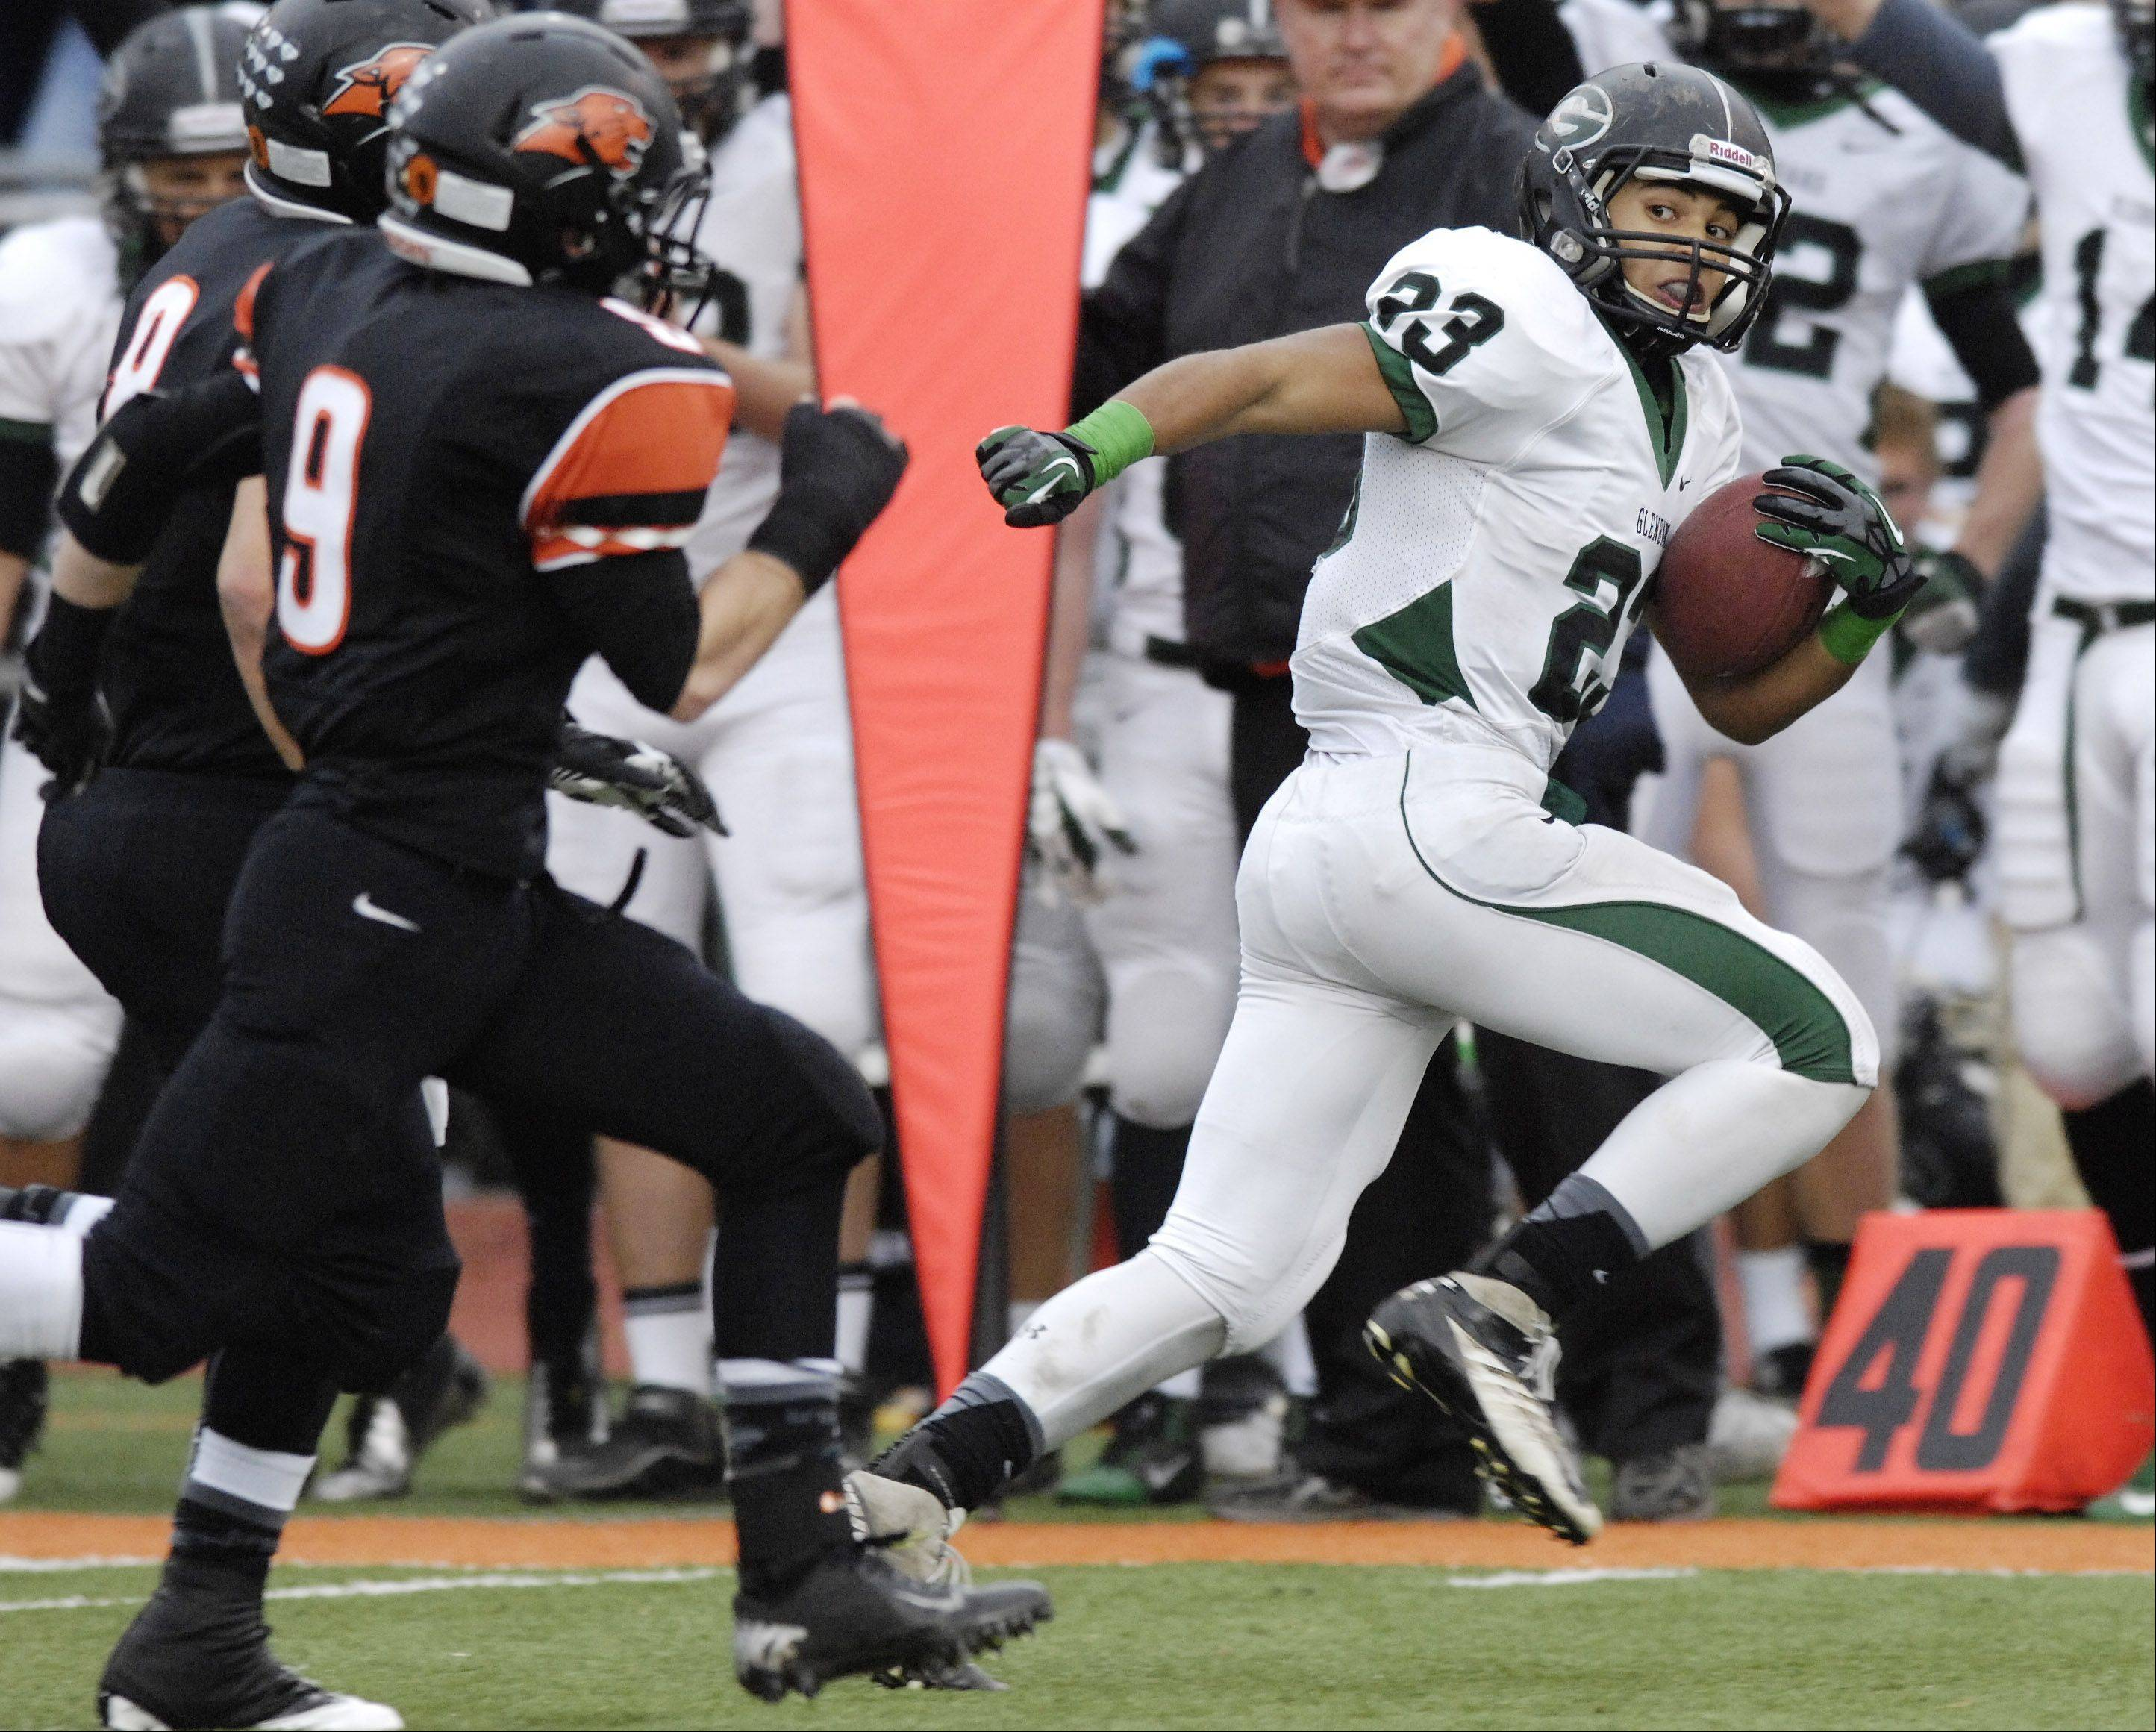 Glenbard West's Scott Andrews carries the ball during Saturday's game against Libertyville.